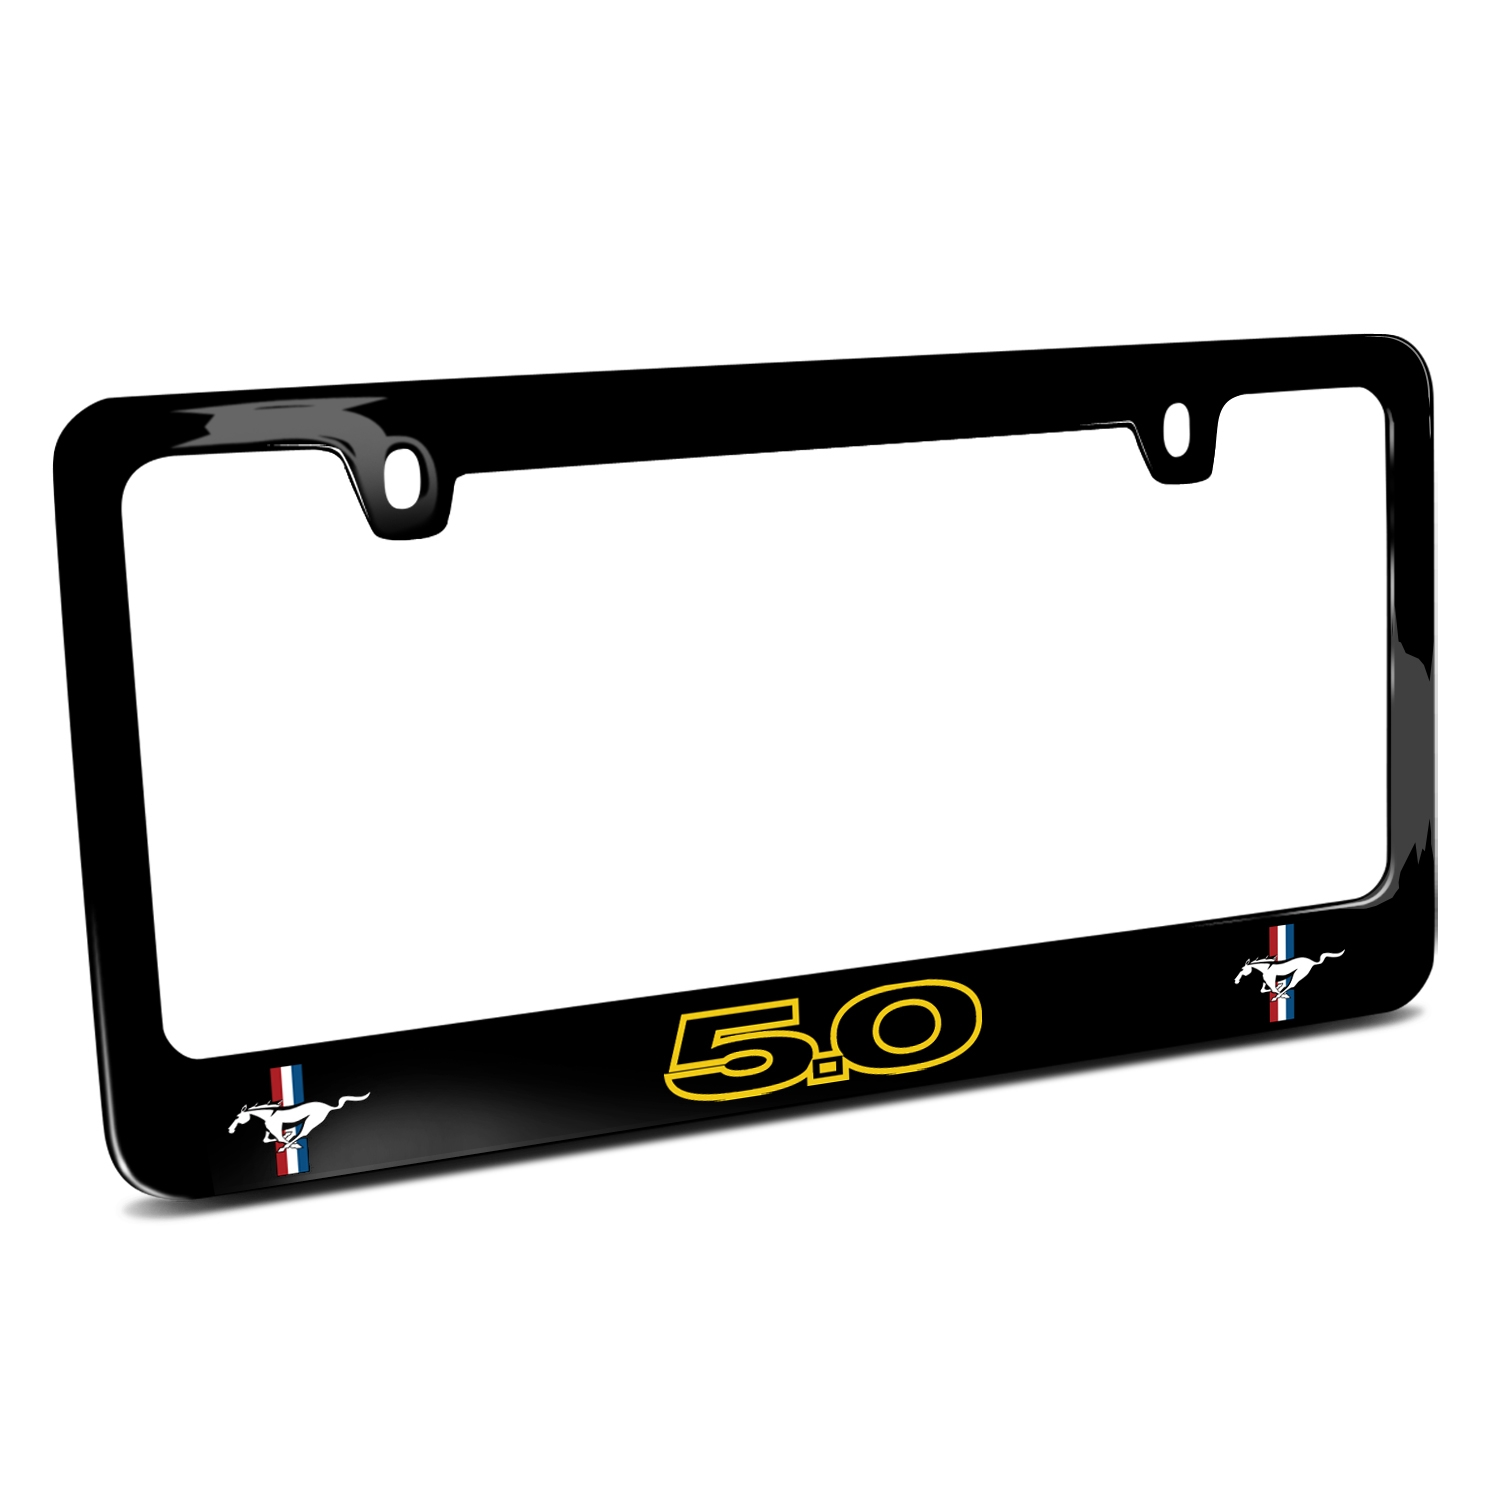 Ford Mustang GT 5.0 Outline in Yellow Dual Logos Black Metal License Plate Frame